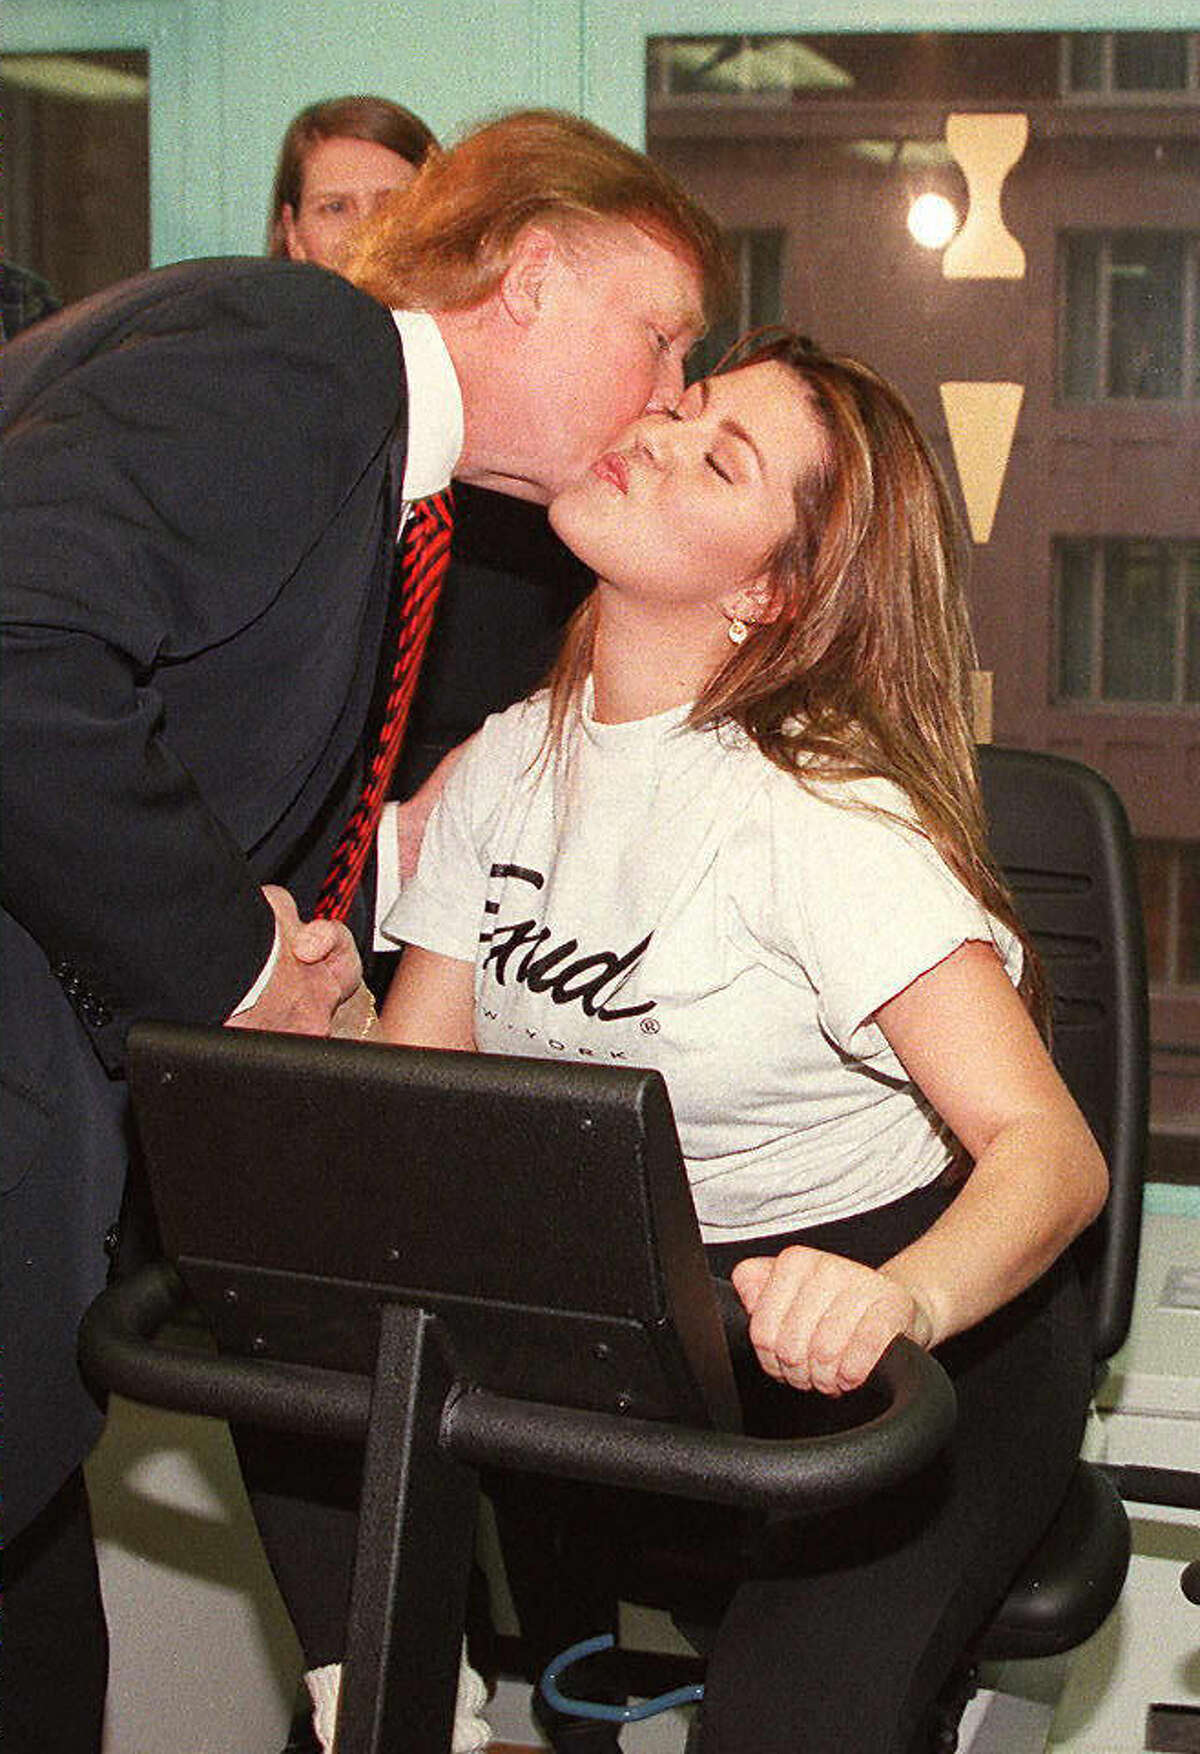 Alicia Machado, Miss Universe 1996, works out on Jan. 28, 1997, in New York. She was criticized by some for gaining weight after the pageant and the story has become a flash point in the 2016 presidential race between Donald Trump and Hillary Clinton.